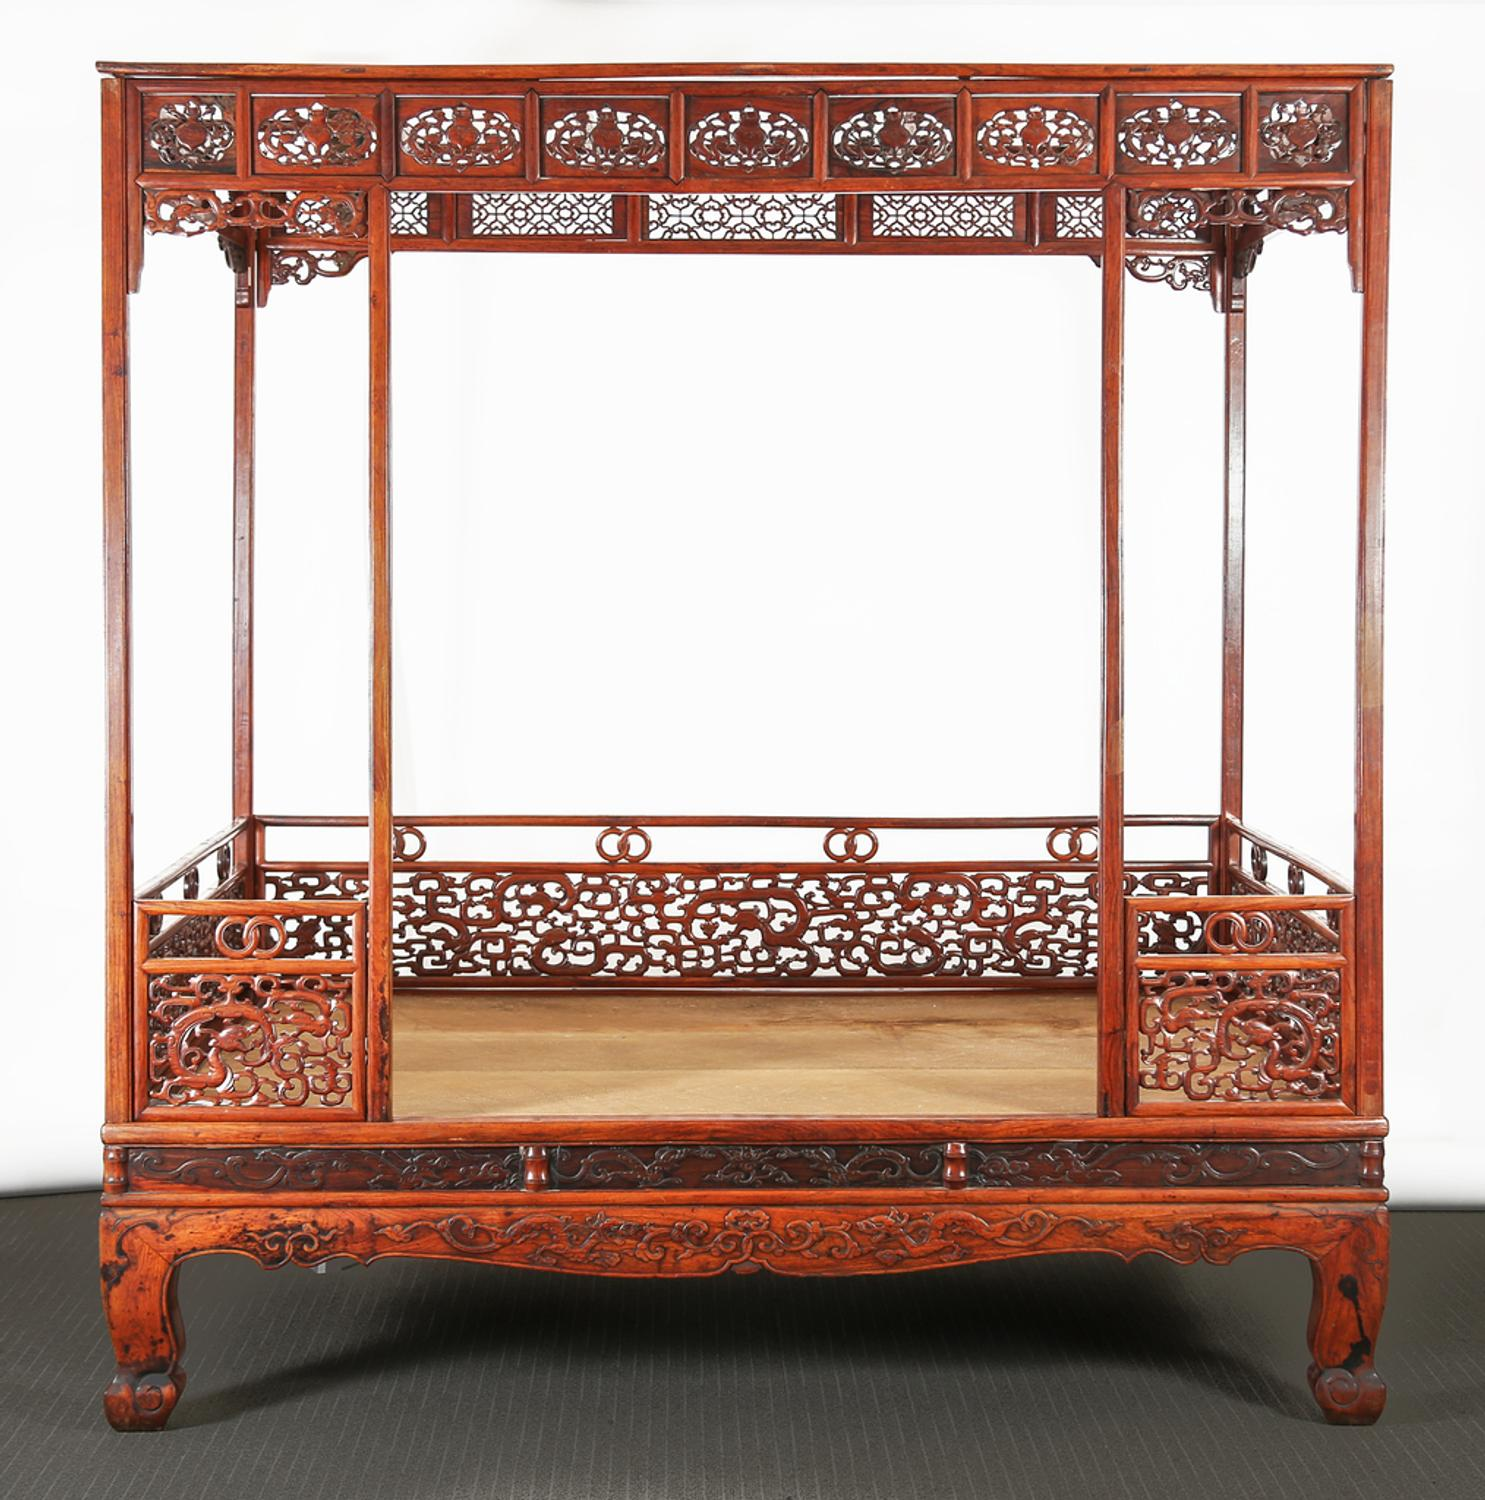 Japanese Canopy Bed Igavel Auctions Announces Robust Fall Schedule Of Asian